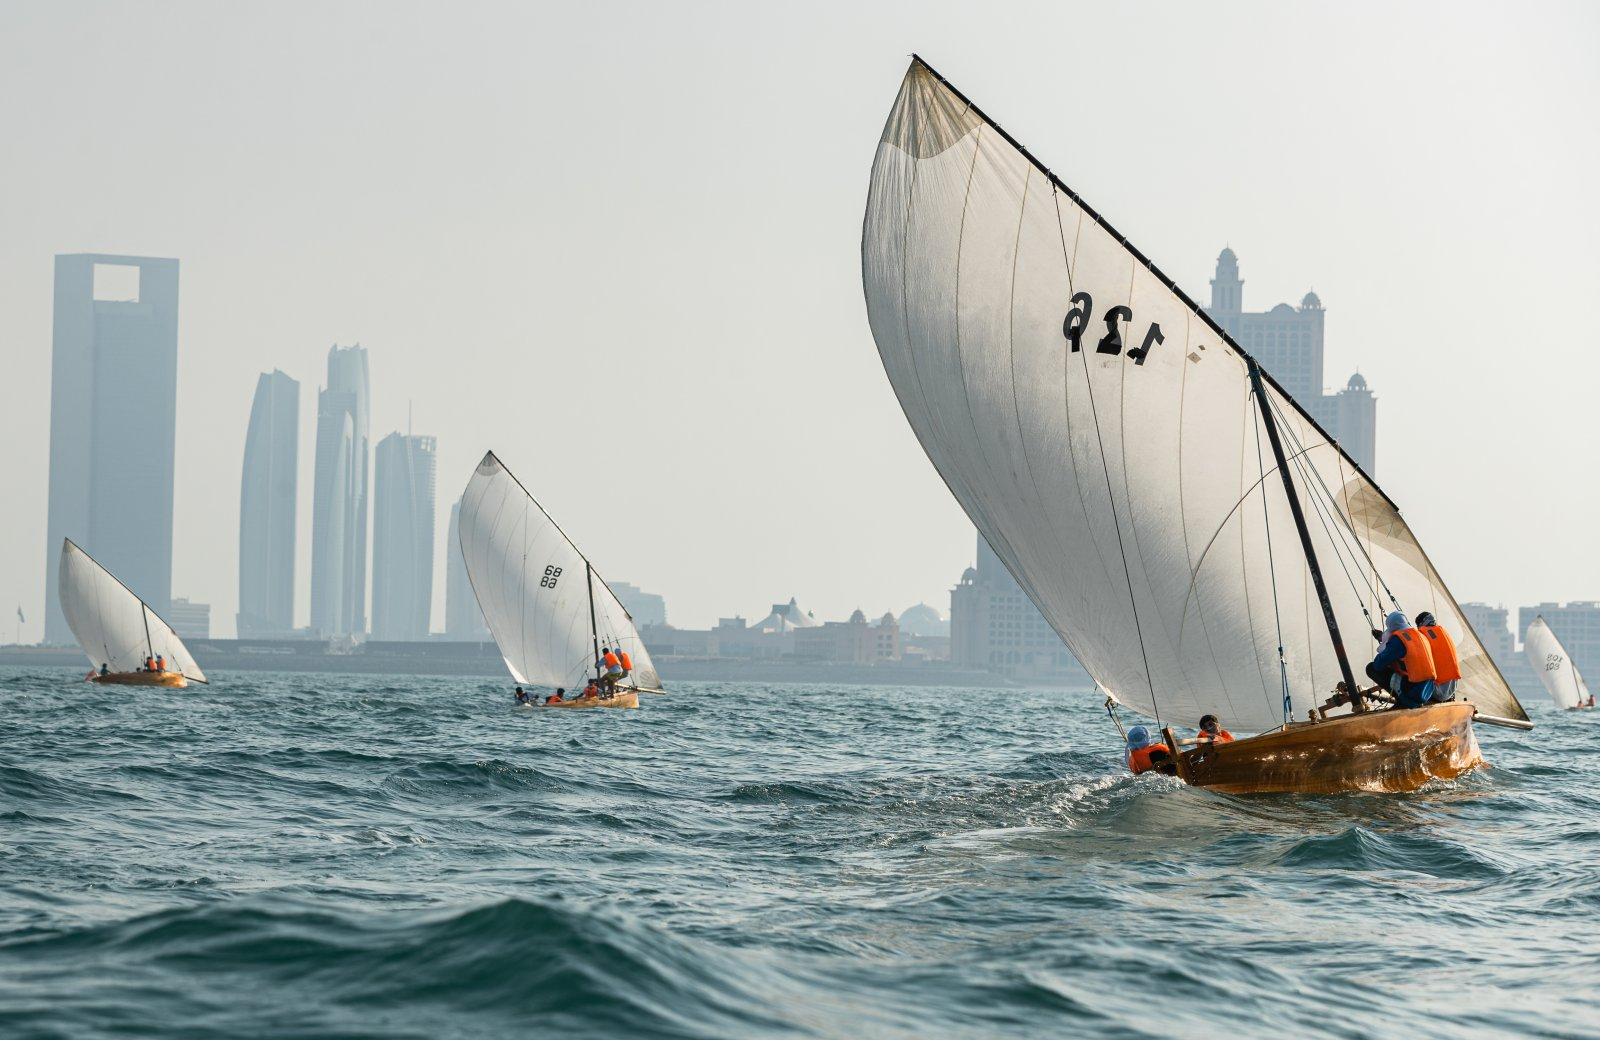 22Feet Dhow Sailing Boats